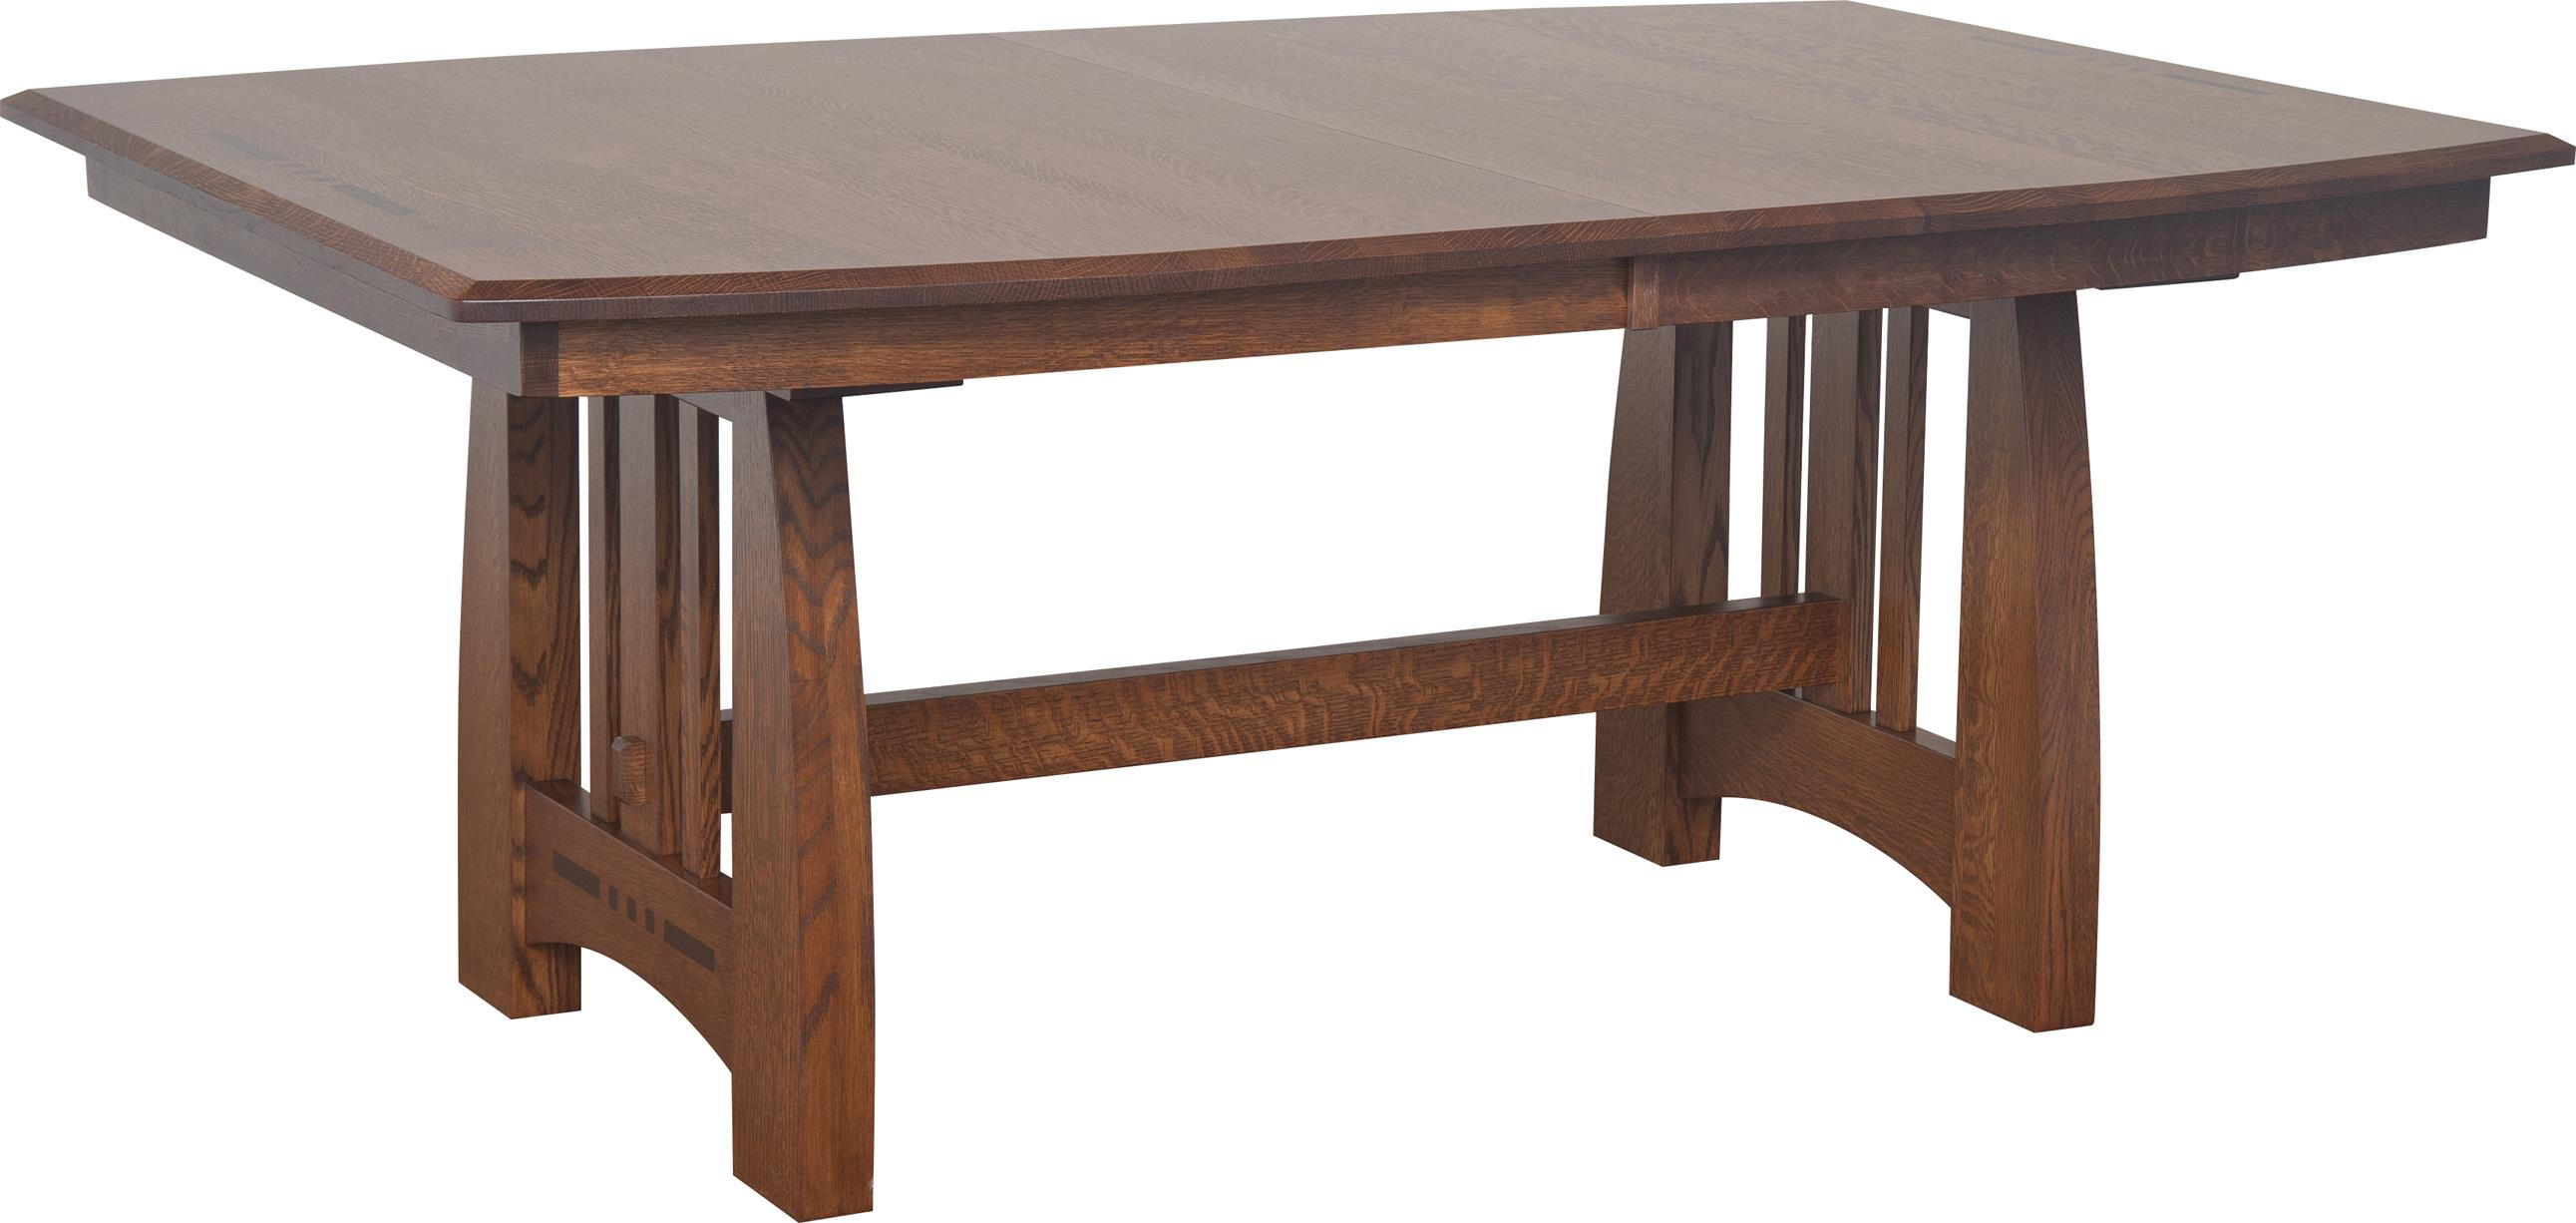 Hayworth Dining Table at Williams & Kay